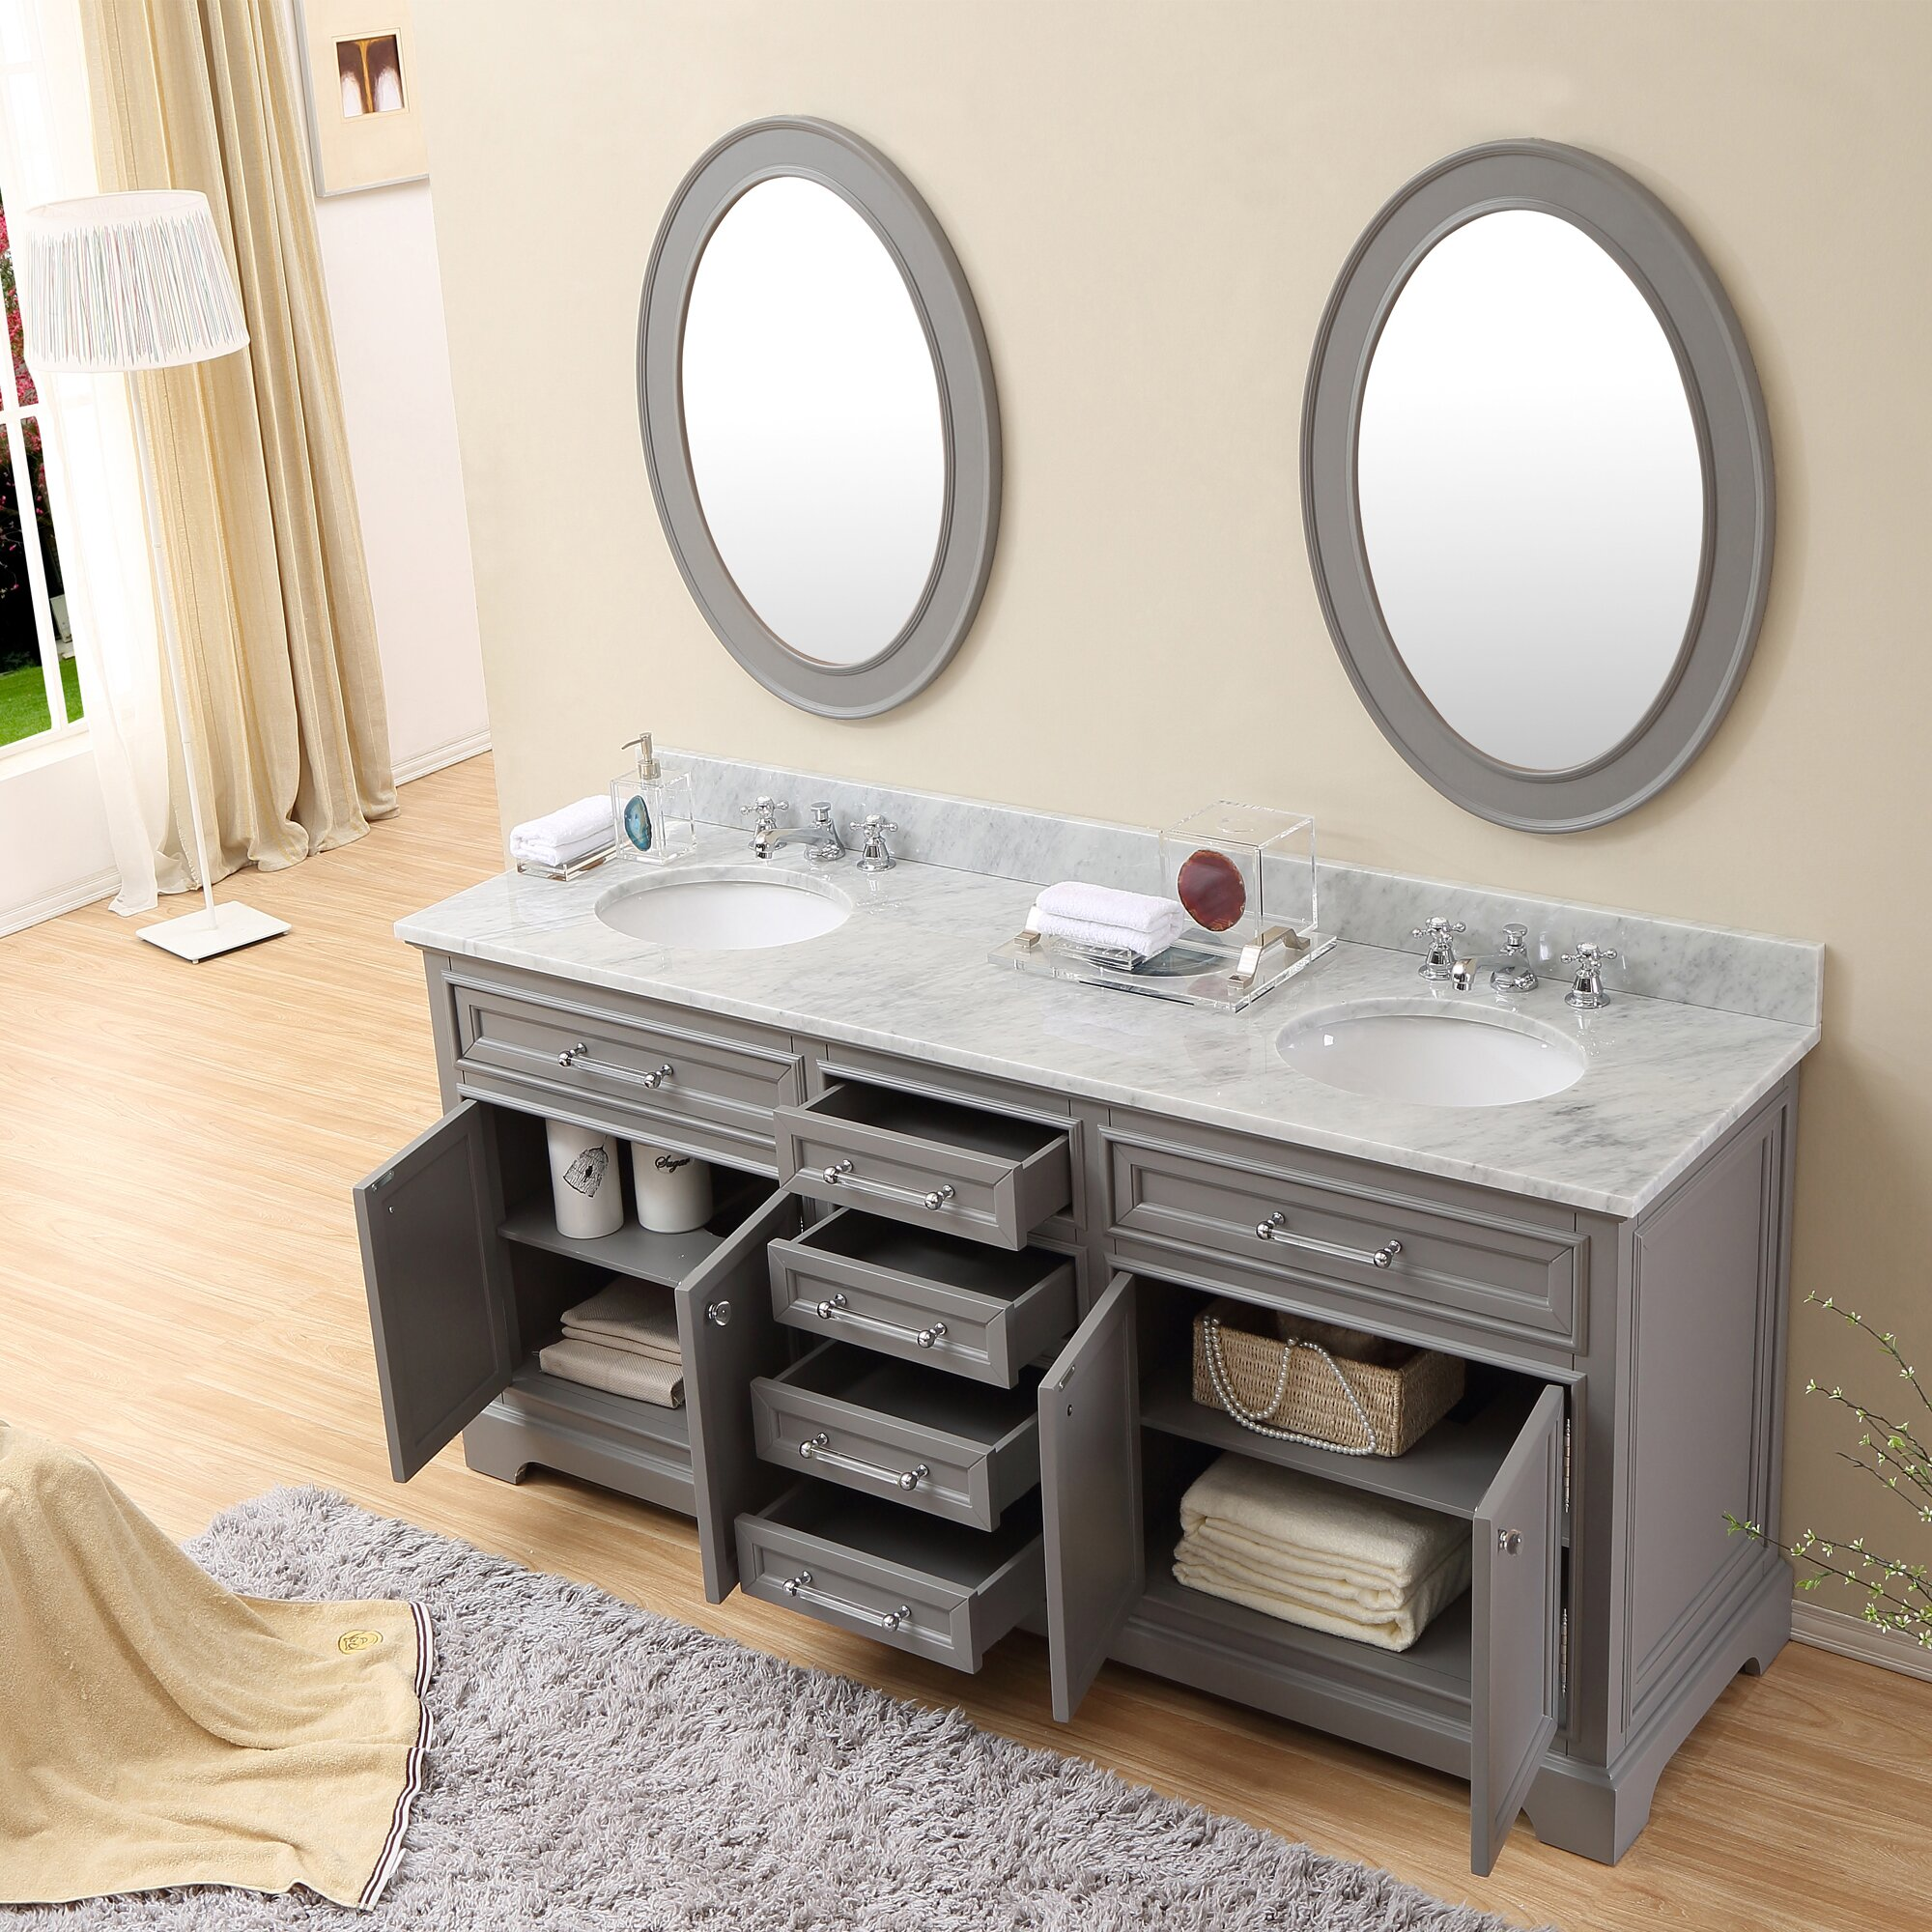 Darby home co colchester 72 double sink bathroom vanity set grey reviews wayfair Bathroom sink and vanity sets